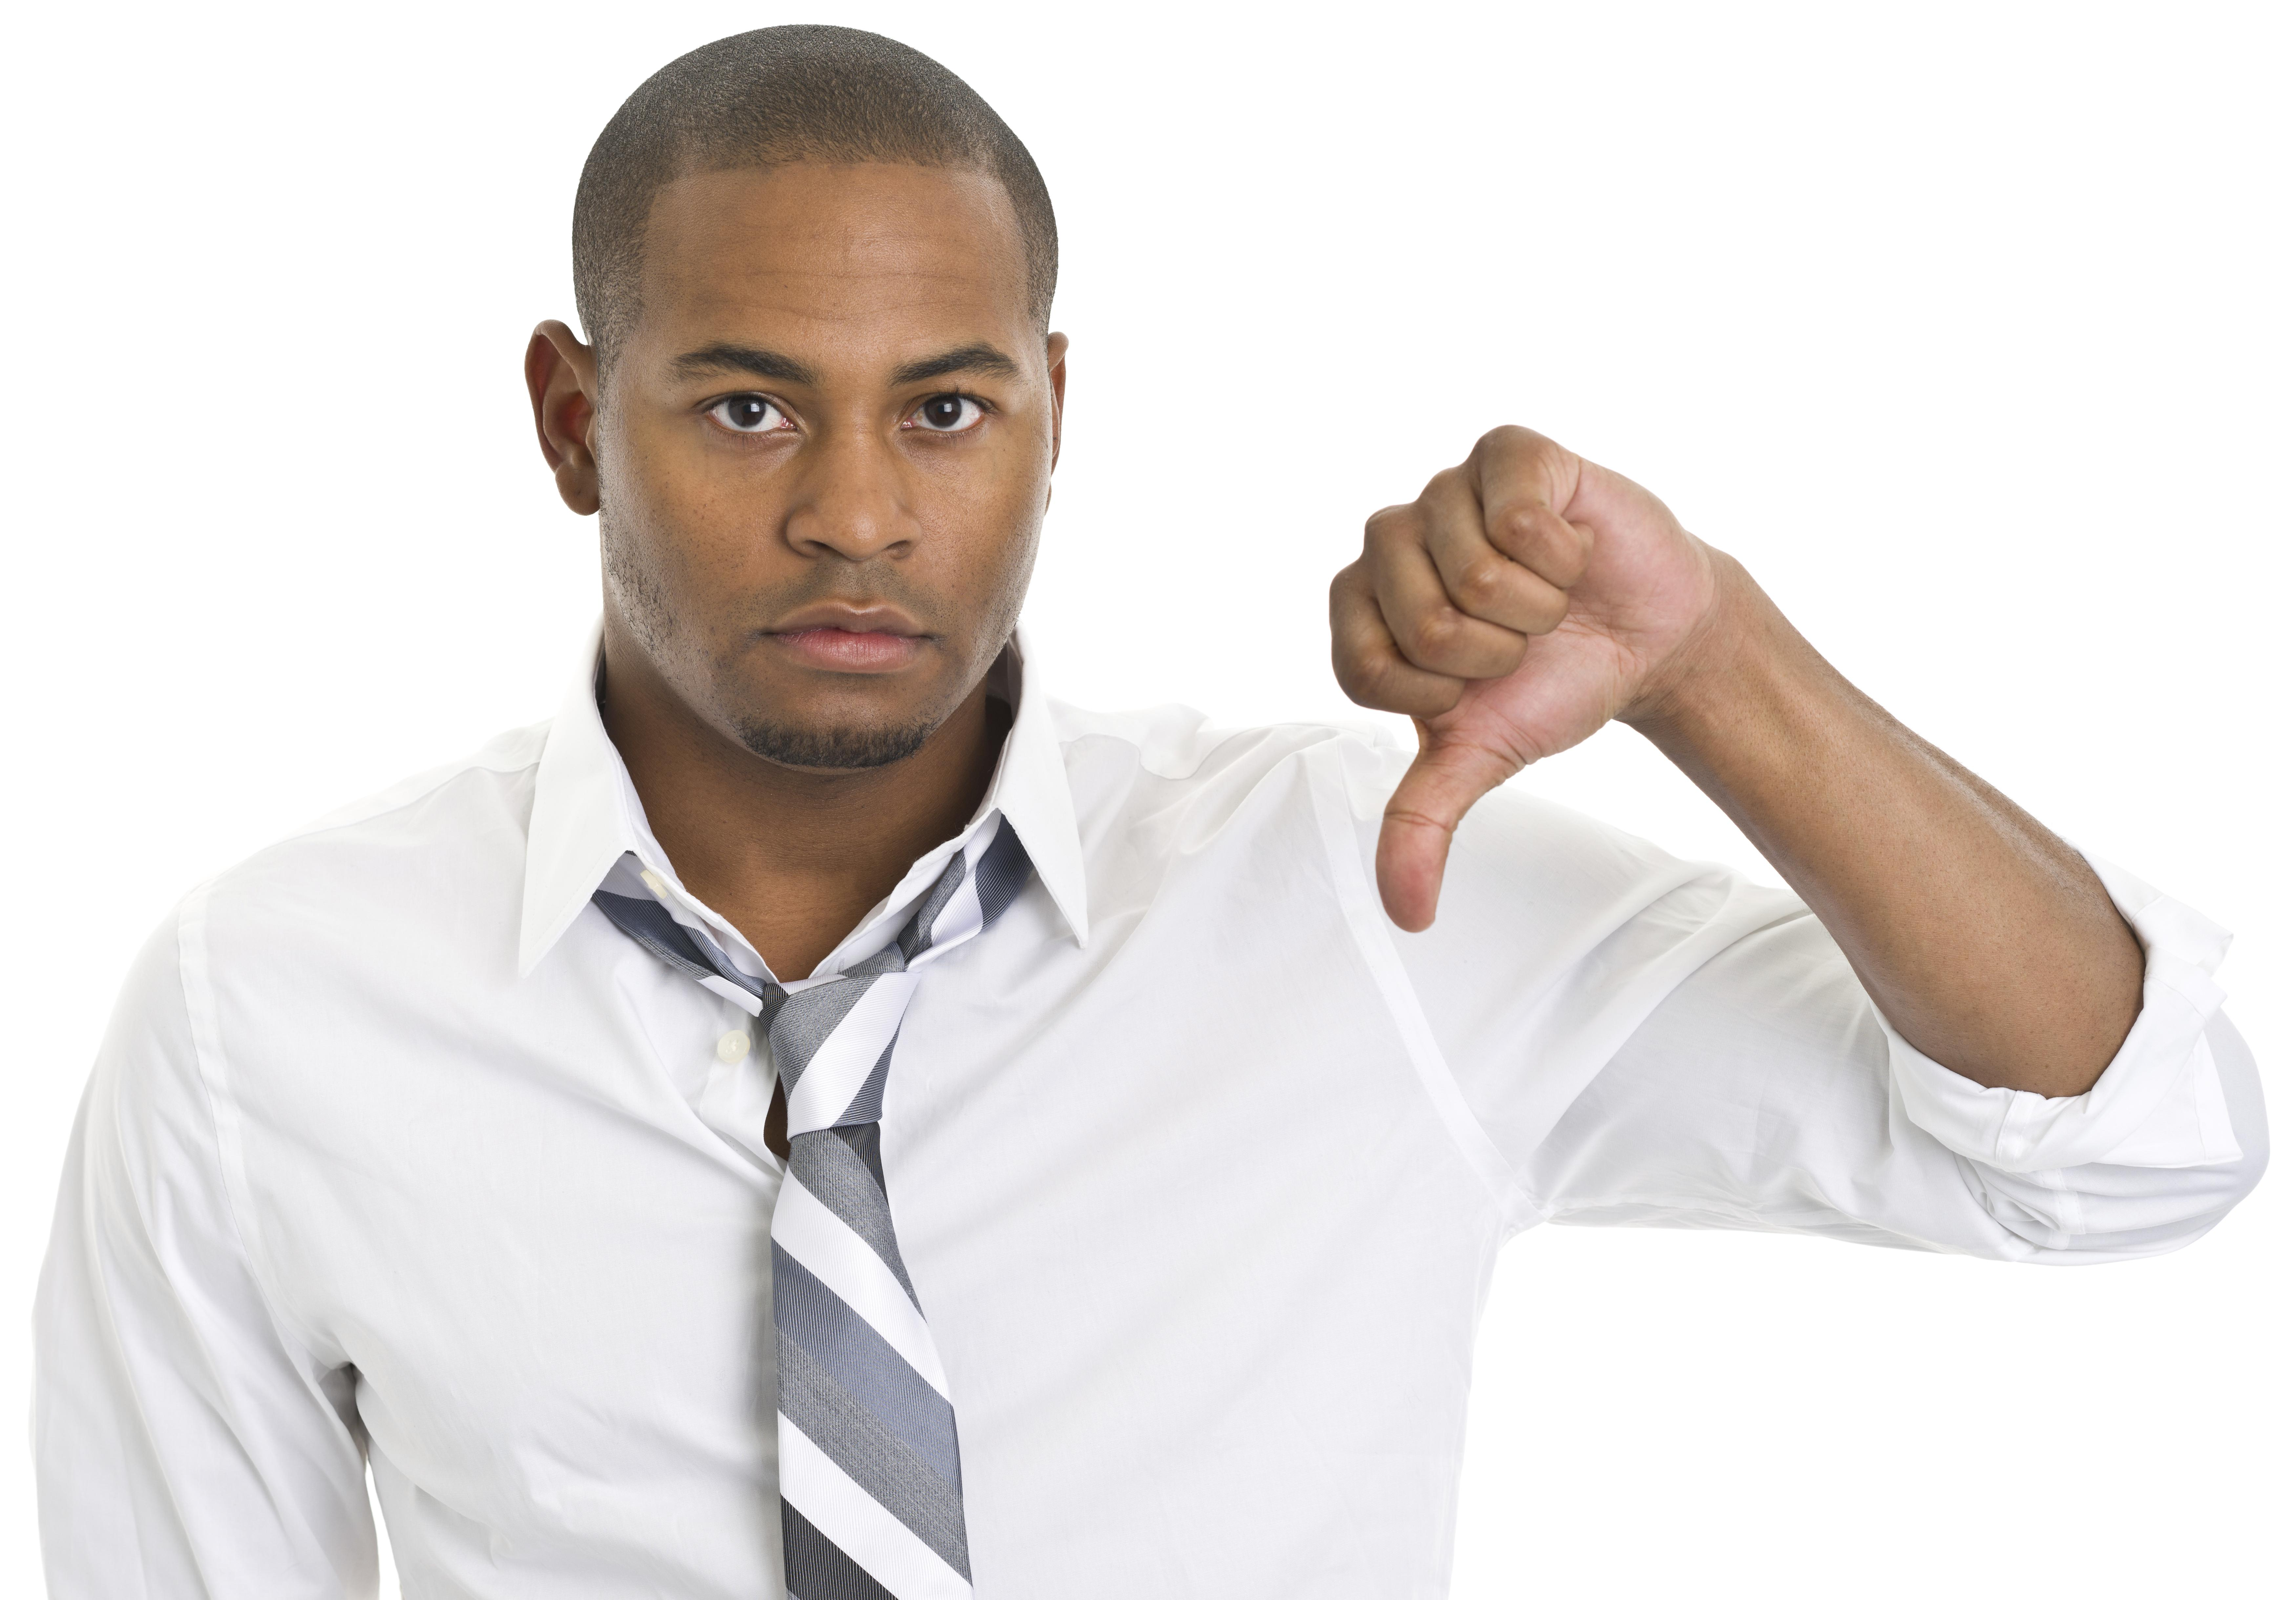 Young Man Gives Thumbs Down